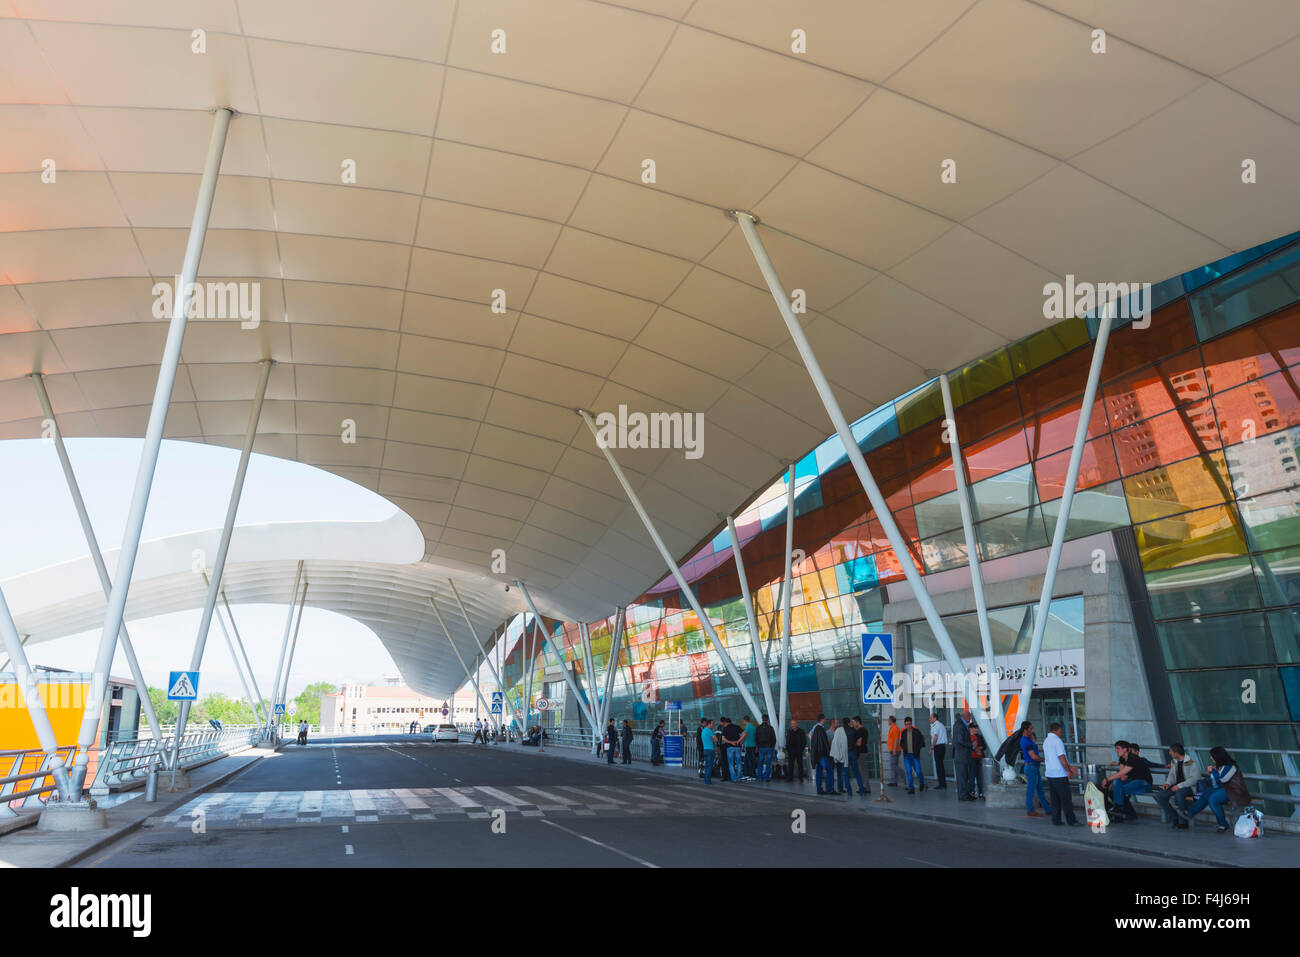 Zvartnots International Airport, Yerevan, Armenia, Caucasus region, Central Asia, Asia - Stock Image